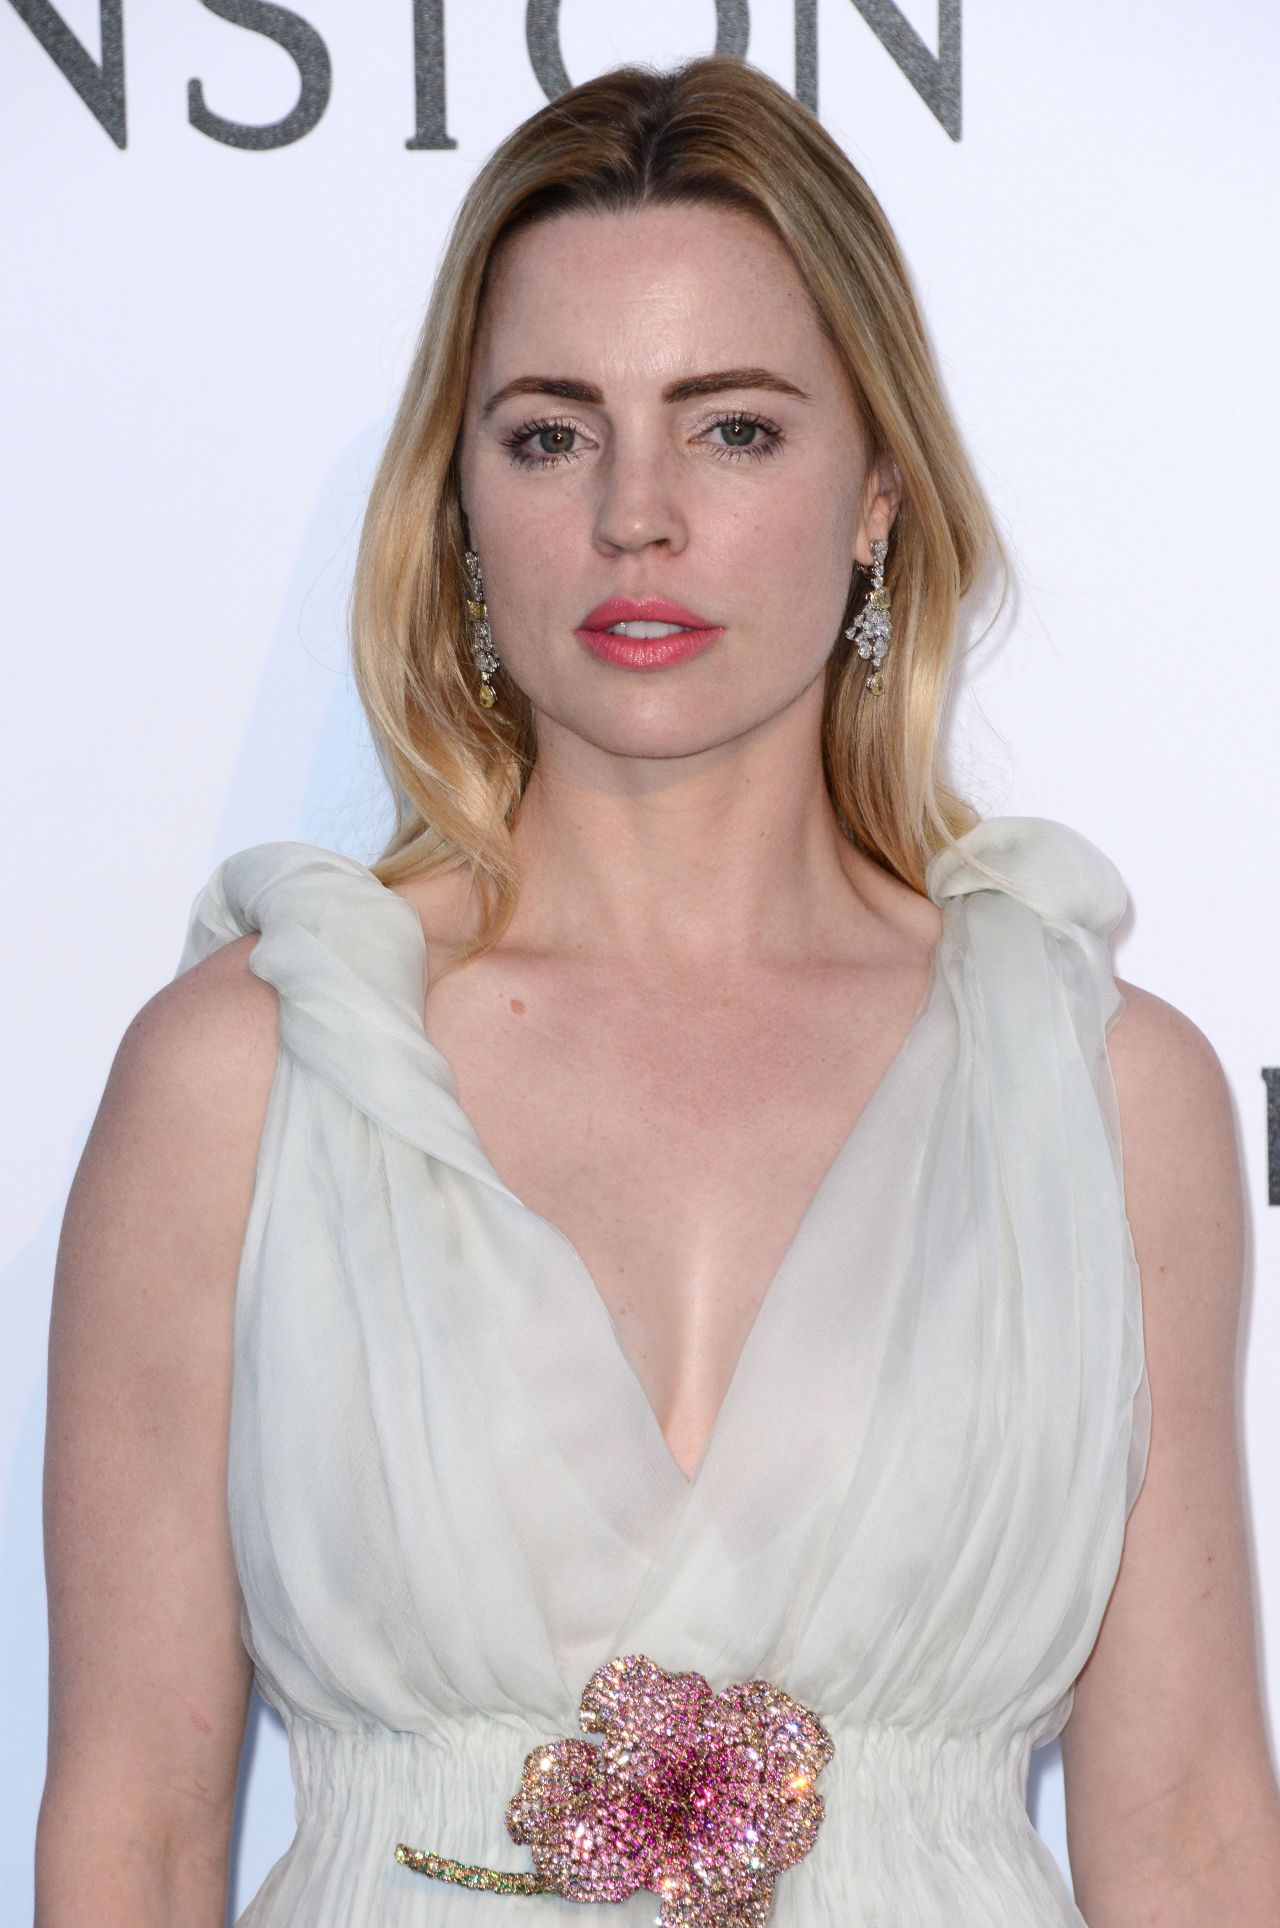 Photos Melissa George nudes (82 foto and video), Topless, Fappening, Selfie, braless 2018